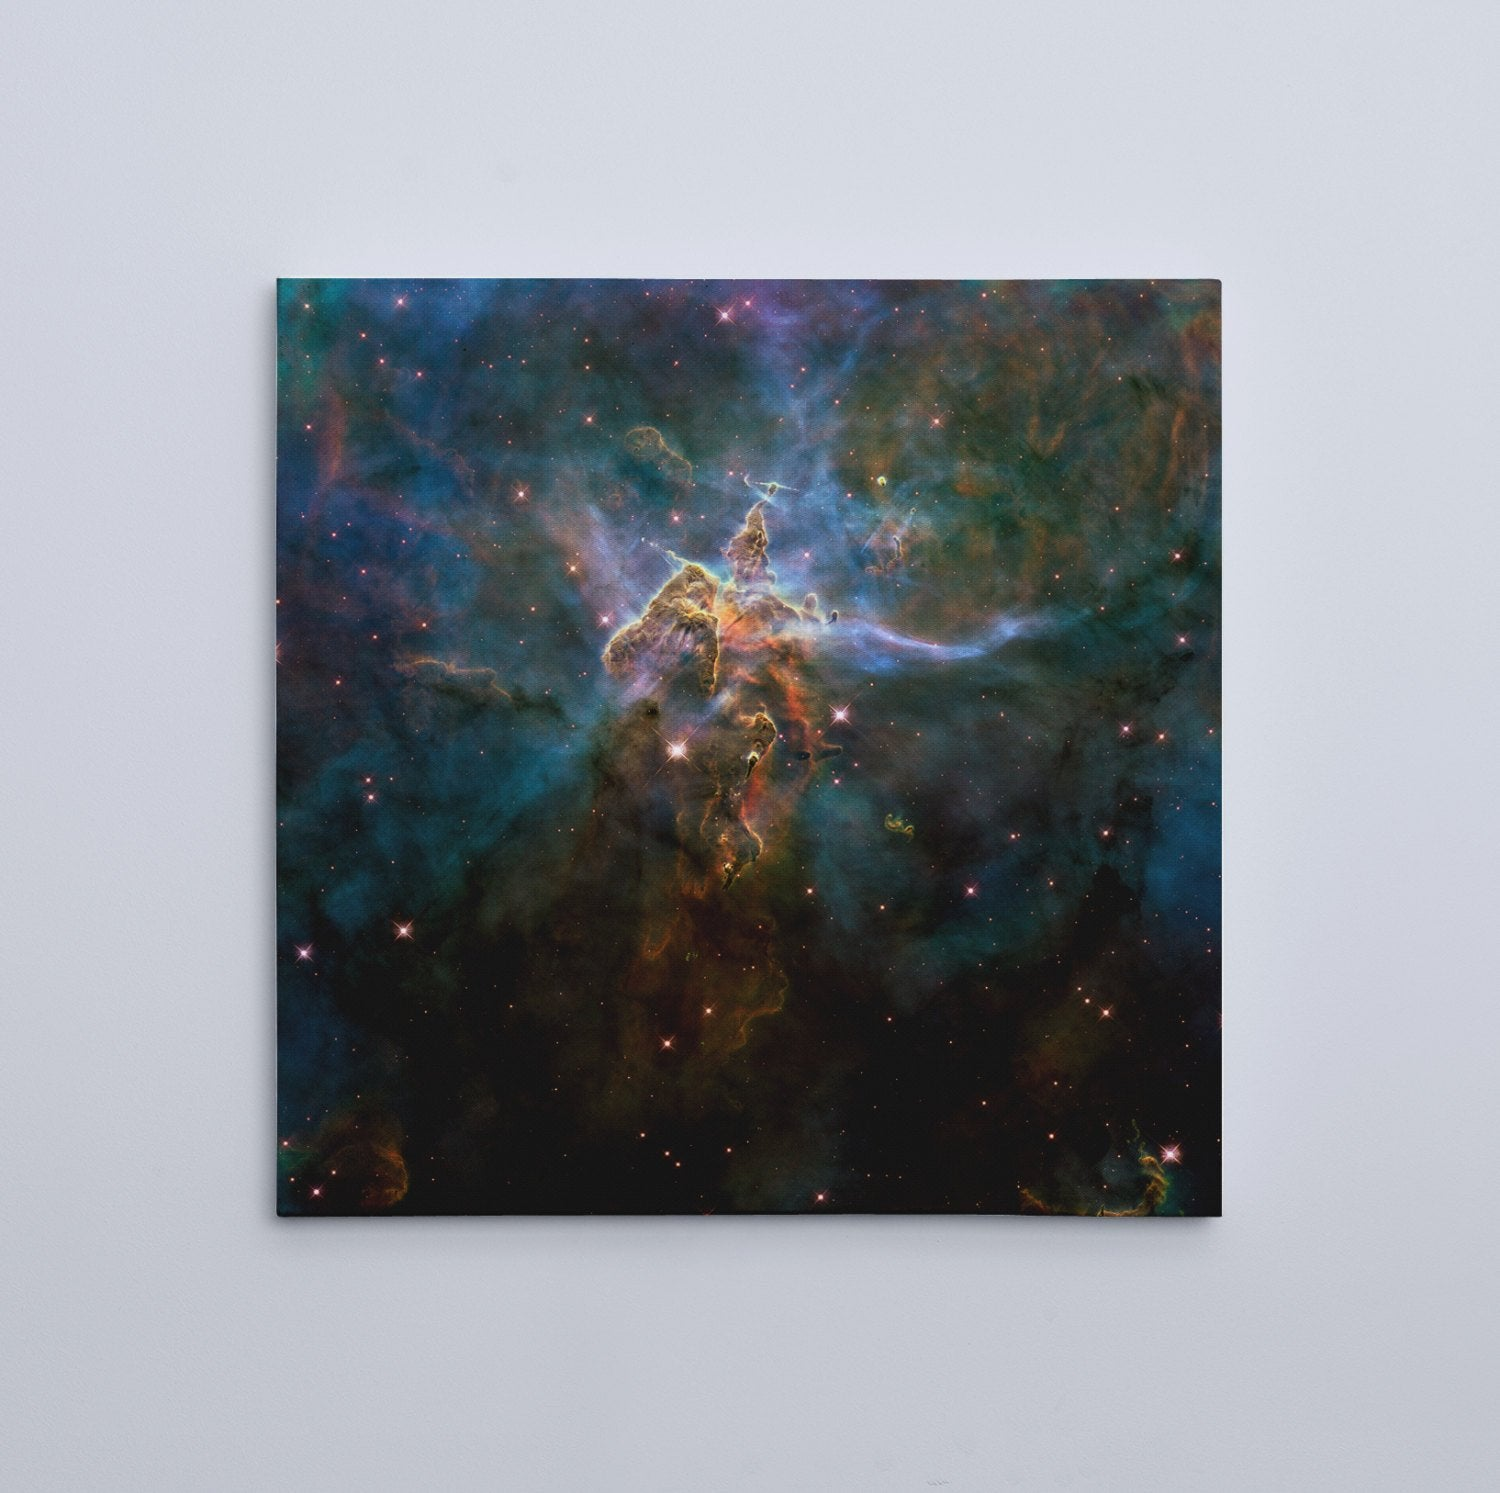 "Mystic Mountain, HD Hubble Image (16"" x 16"") - Canvas Wrap Print"